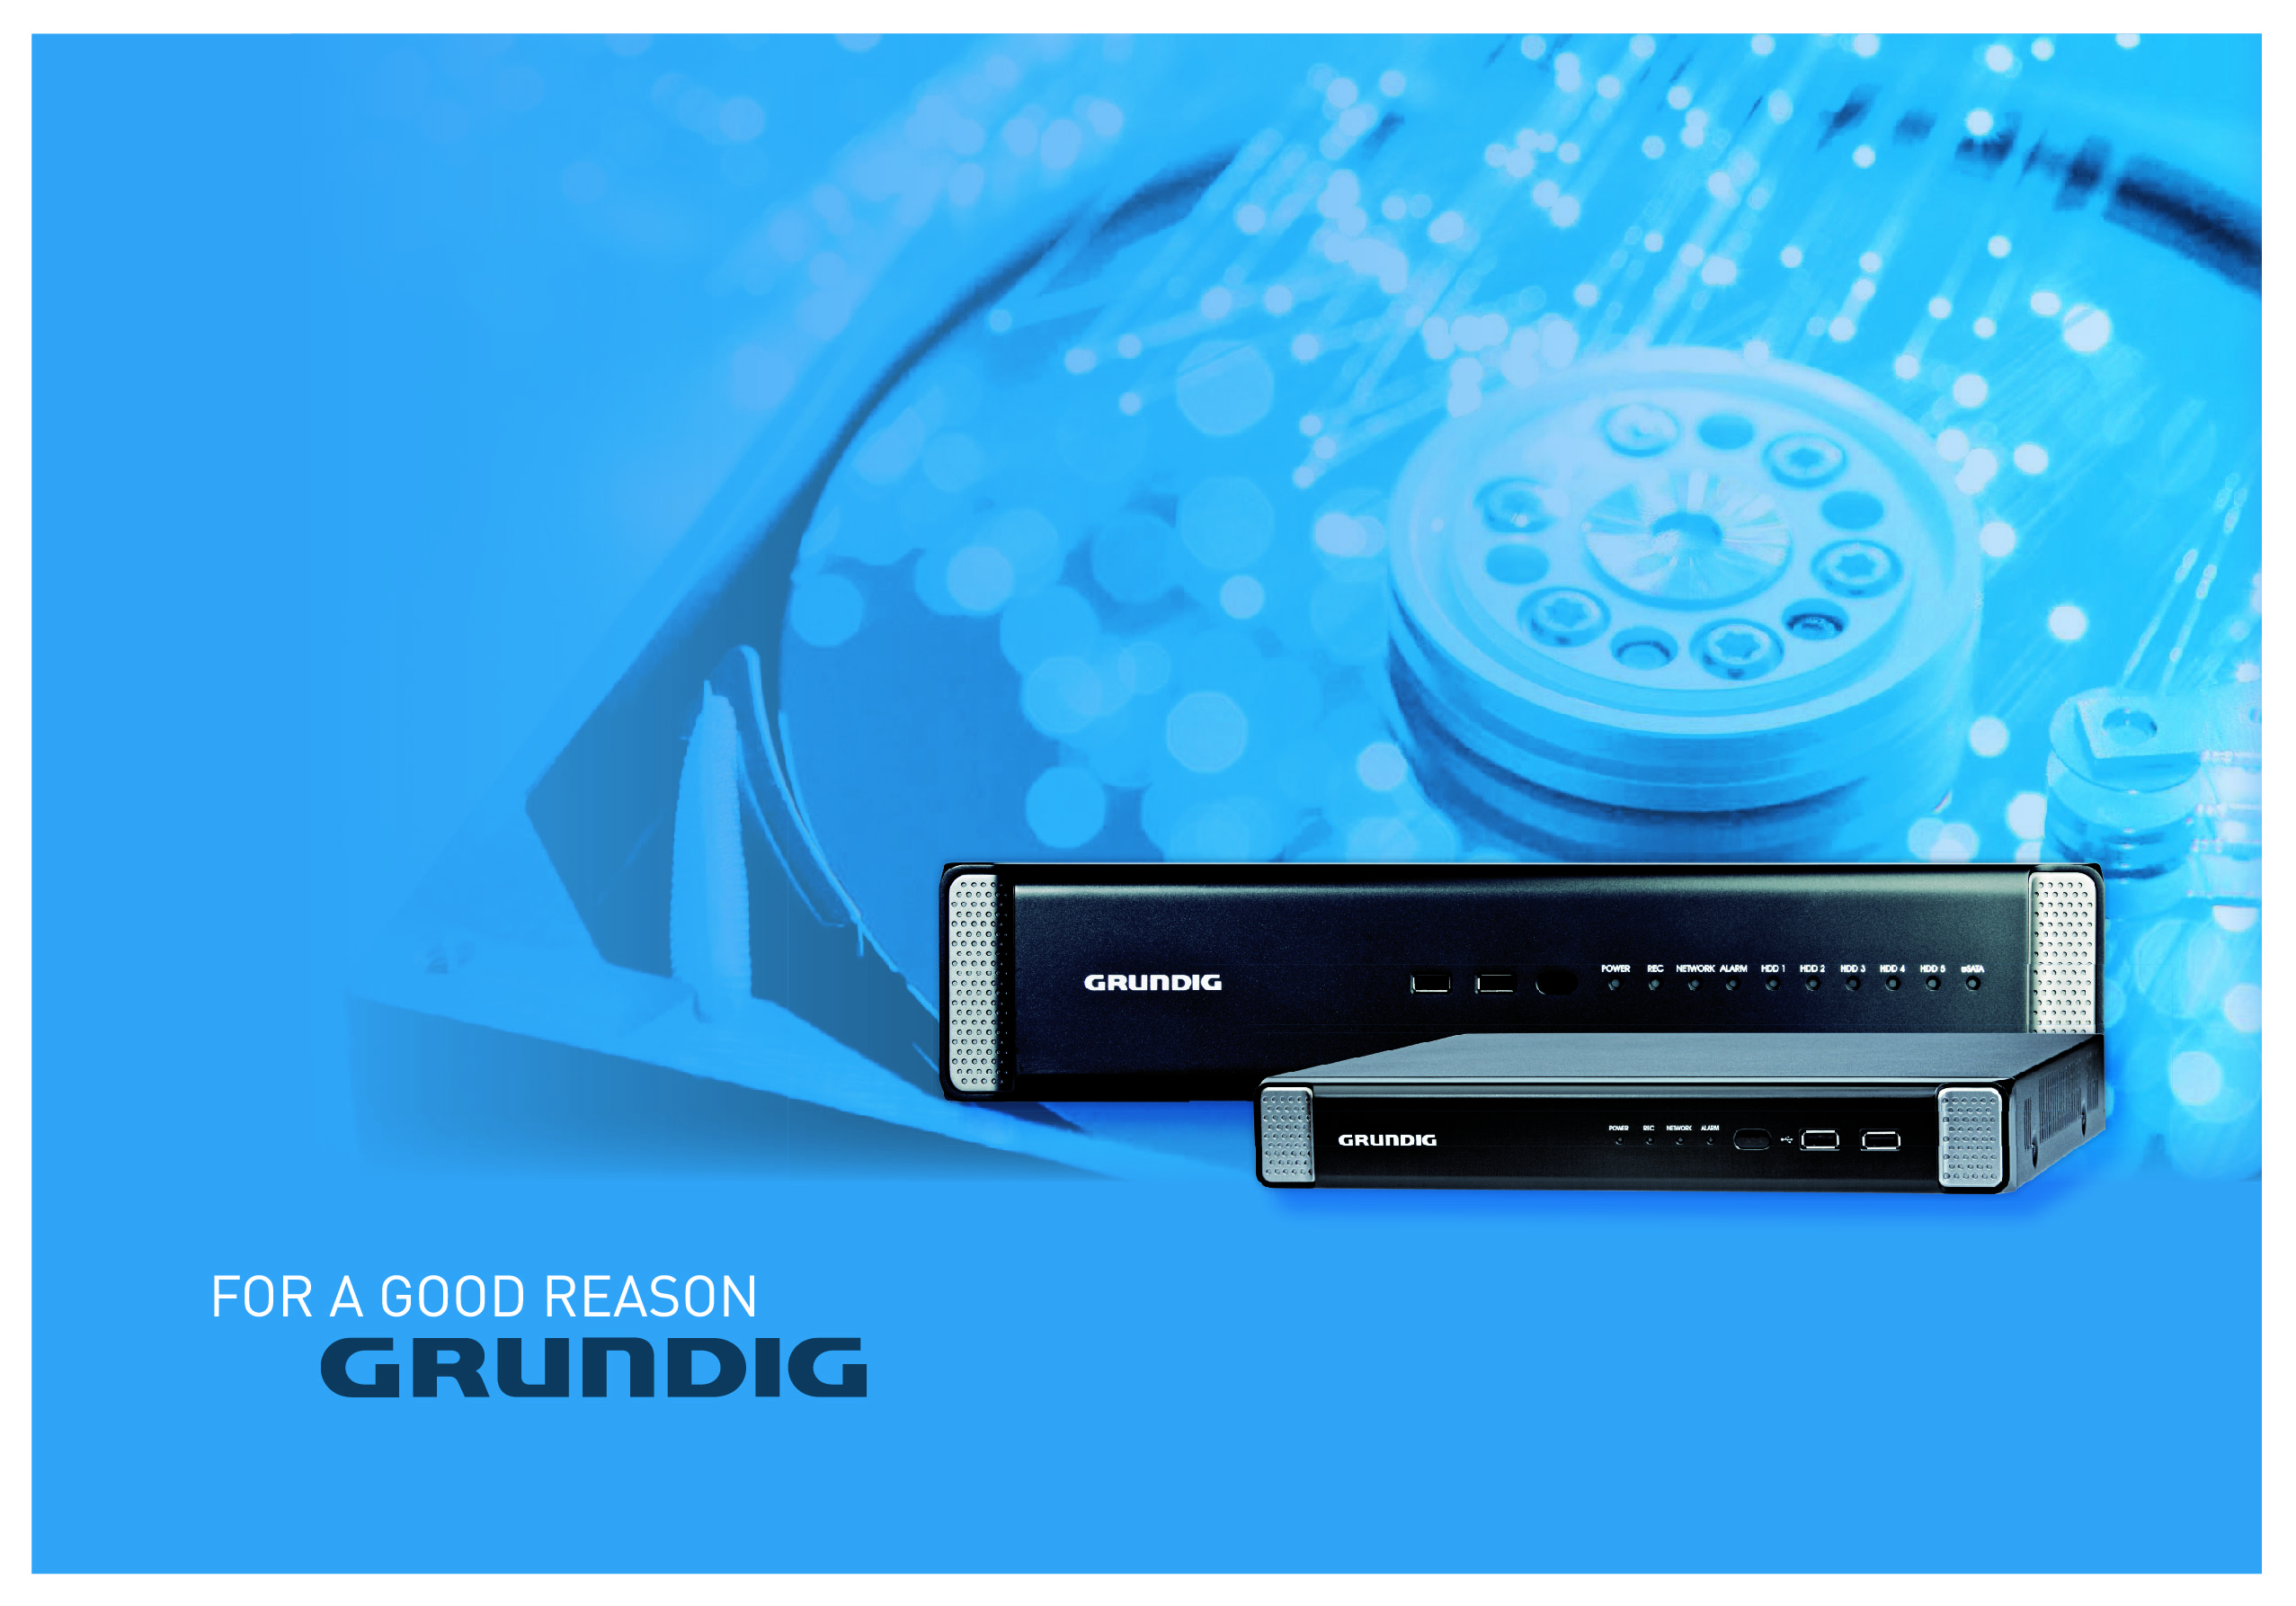 Grundig S Standalone Nvr Wins Best New Product At Moscow